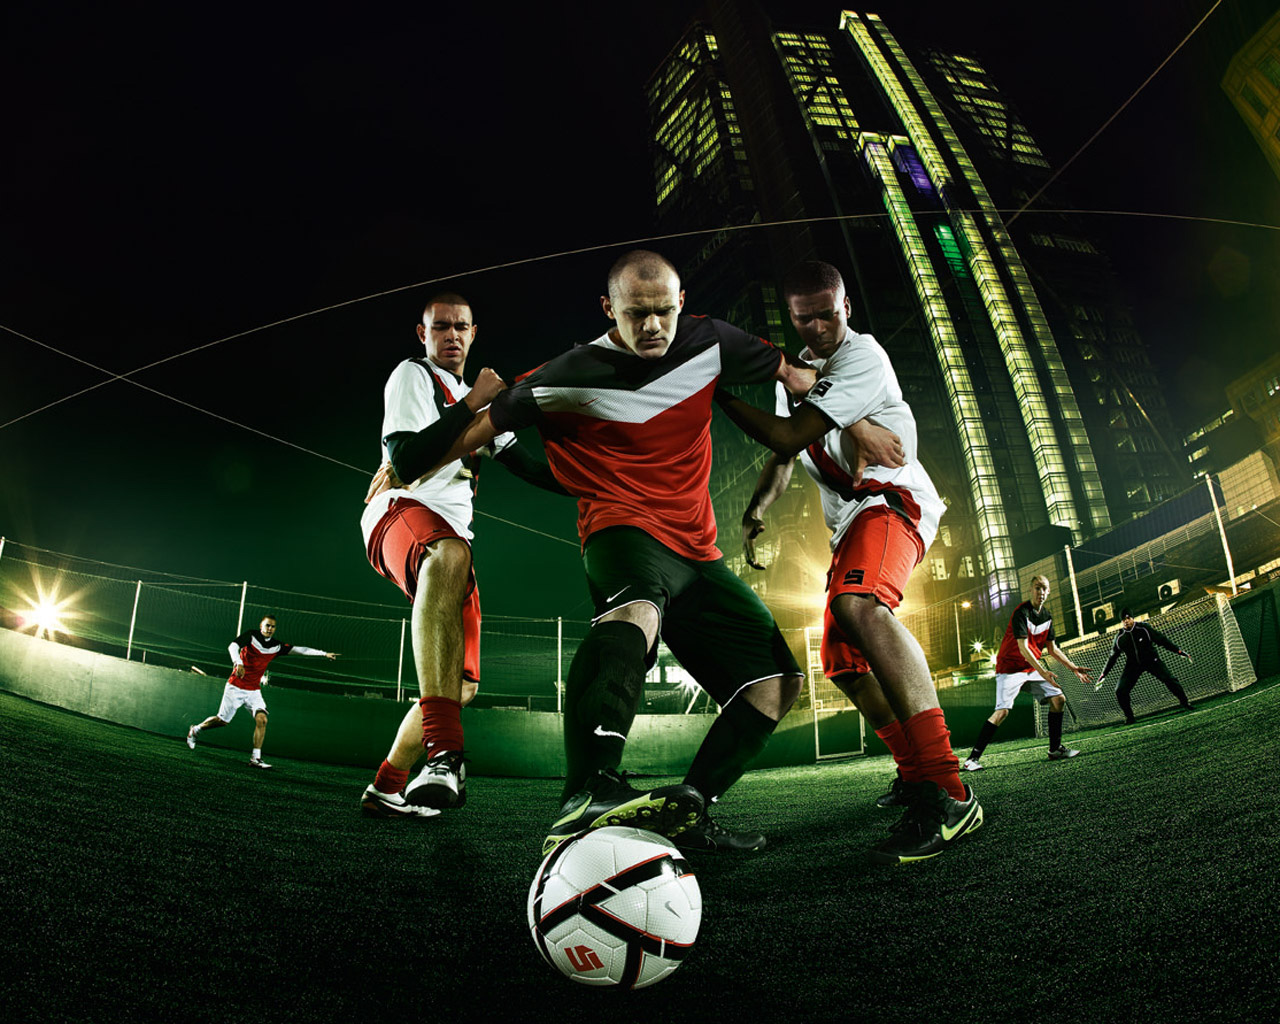 Soccer Wayne Rooneyvery Cool Nike Px Football Picture 428869 1280 1280x1024